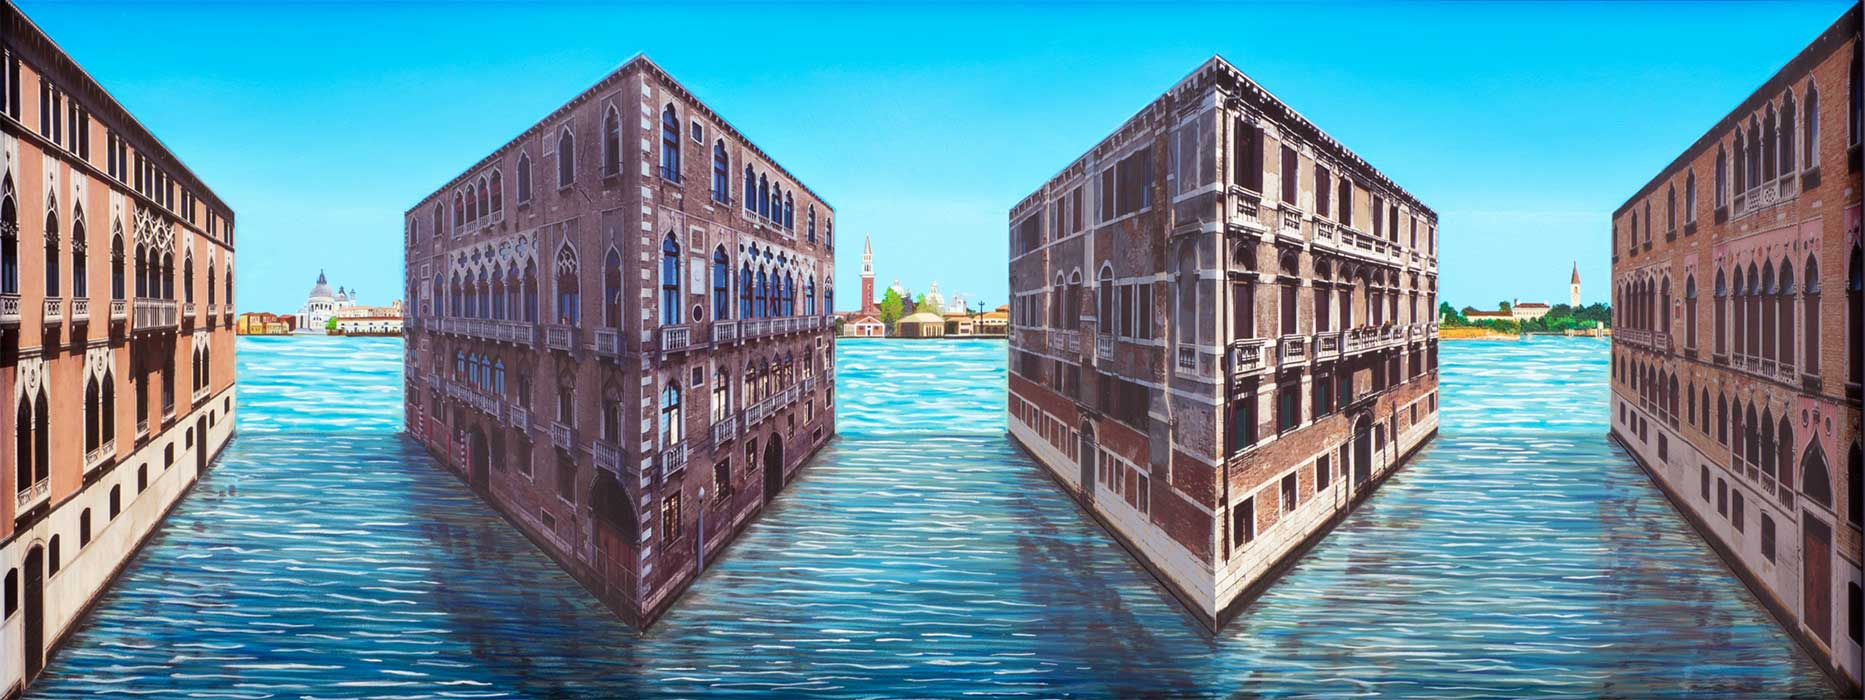 Venetia <p>2014 | Edition 5 | 58 X 119 X 16 cm / 23 x 46¾ x 6¼ in</p>